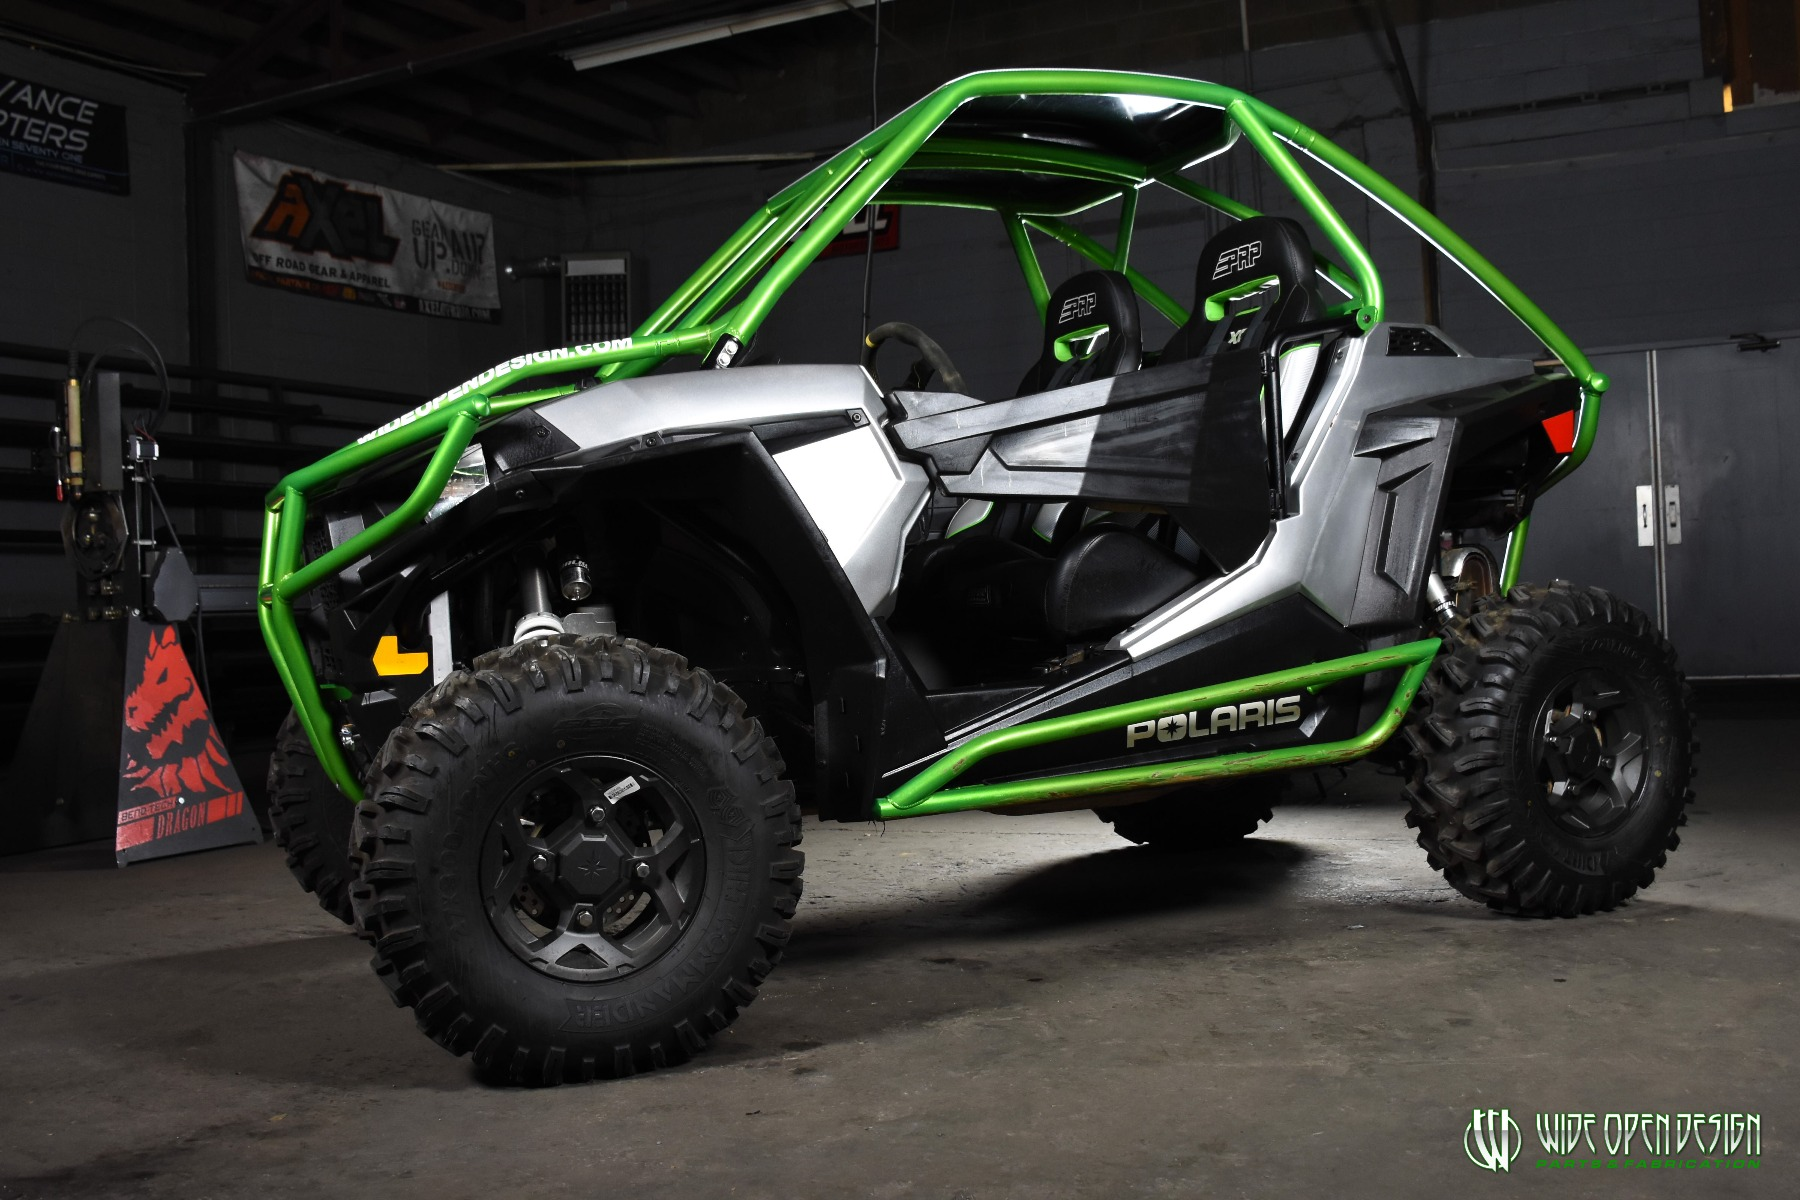 Jason's 1000s RZR with Wide Open Design Rolled Roof Cage, Front Bumper with Tie In, and Rocker Guards 7